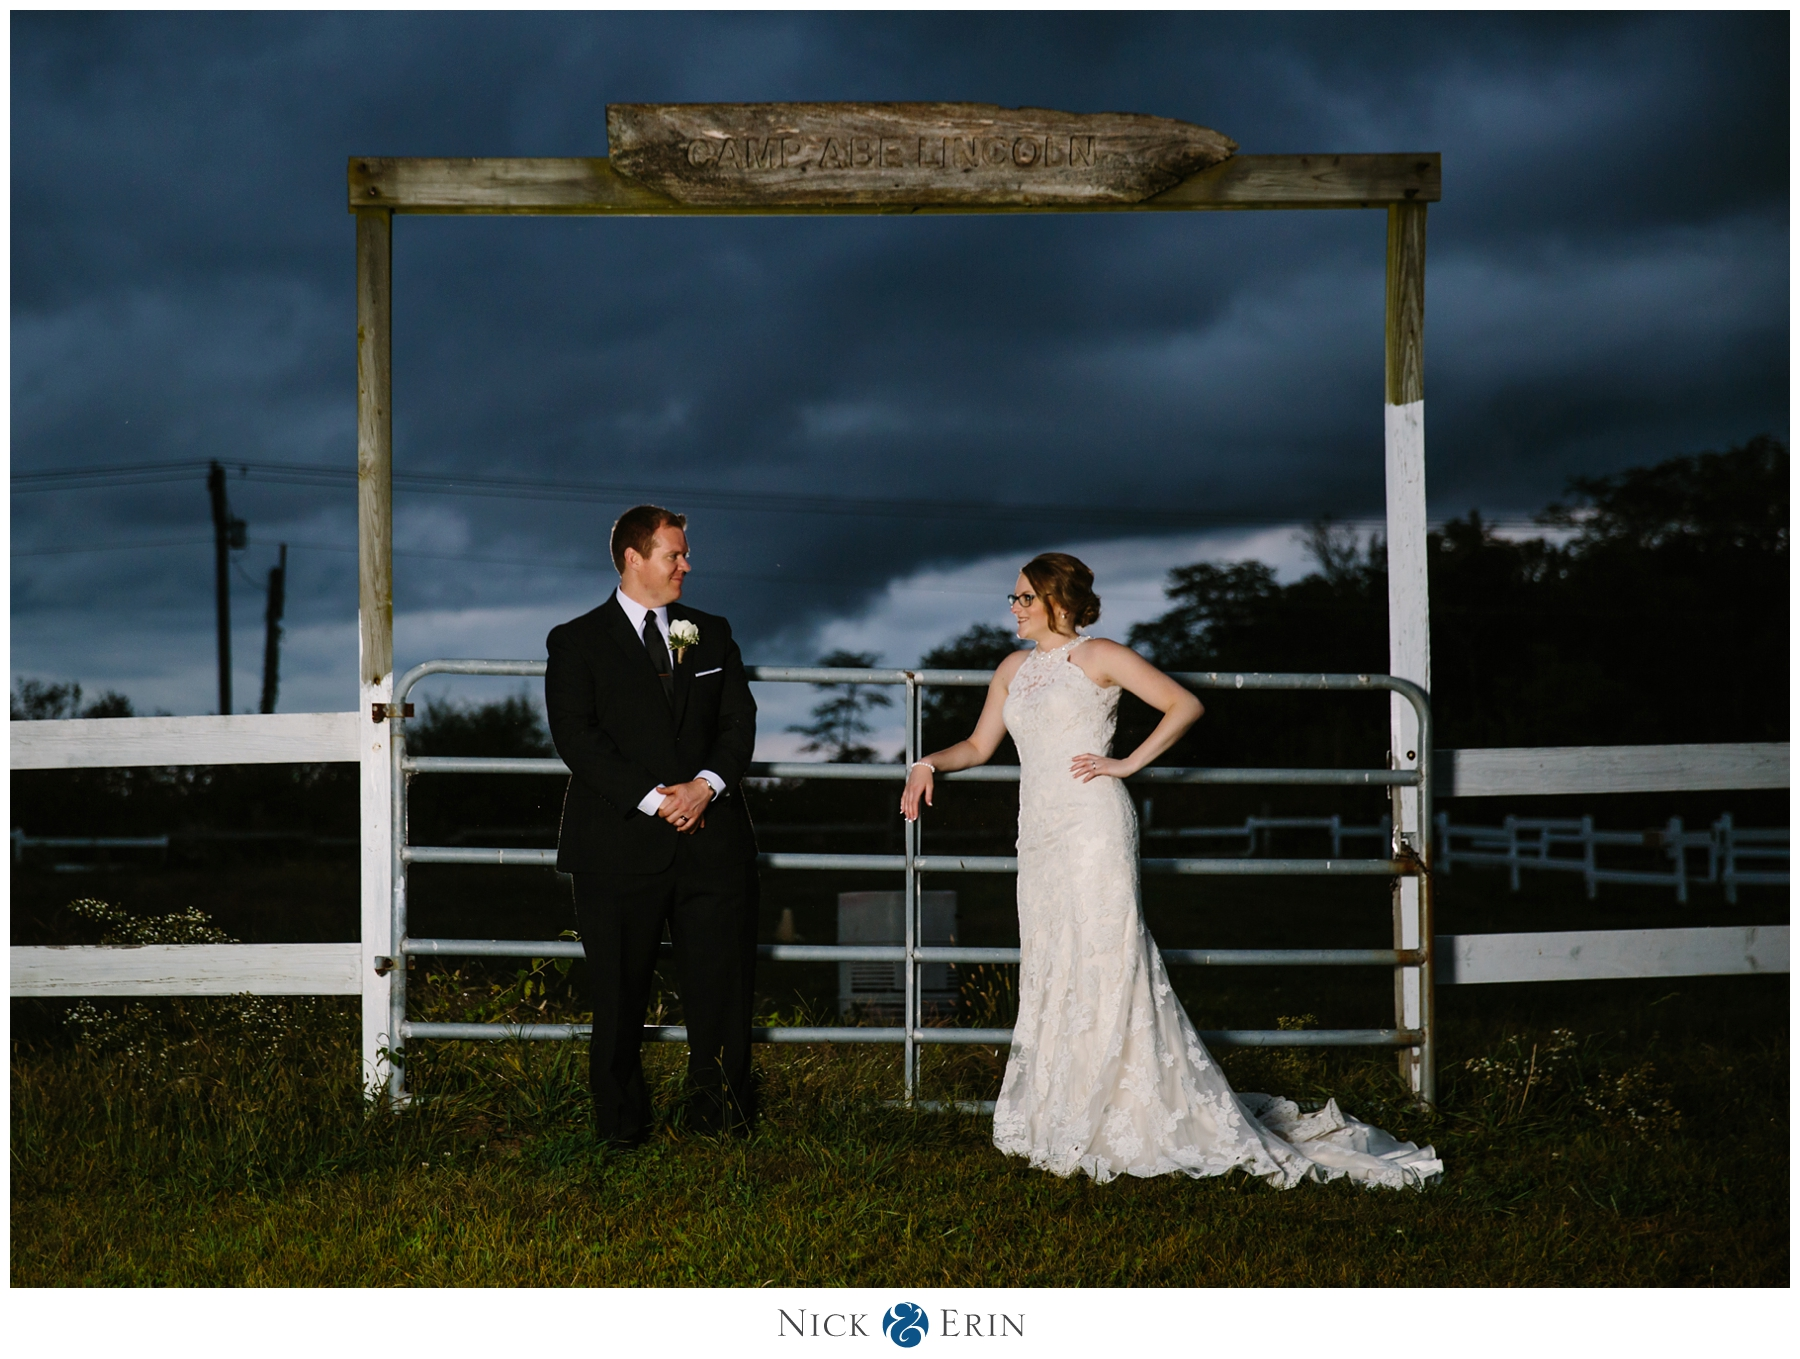 donner_photography_iowa-wedding_katie-chris_0003